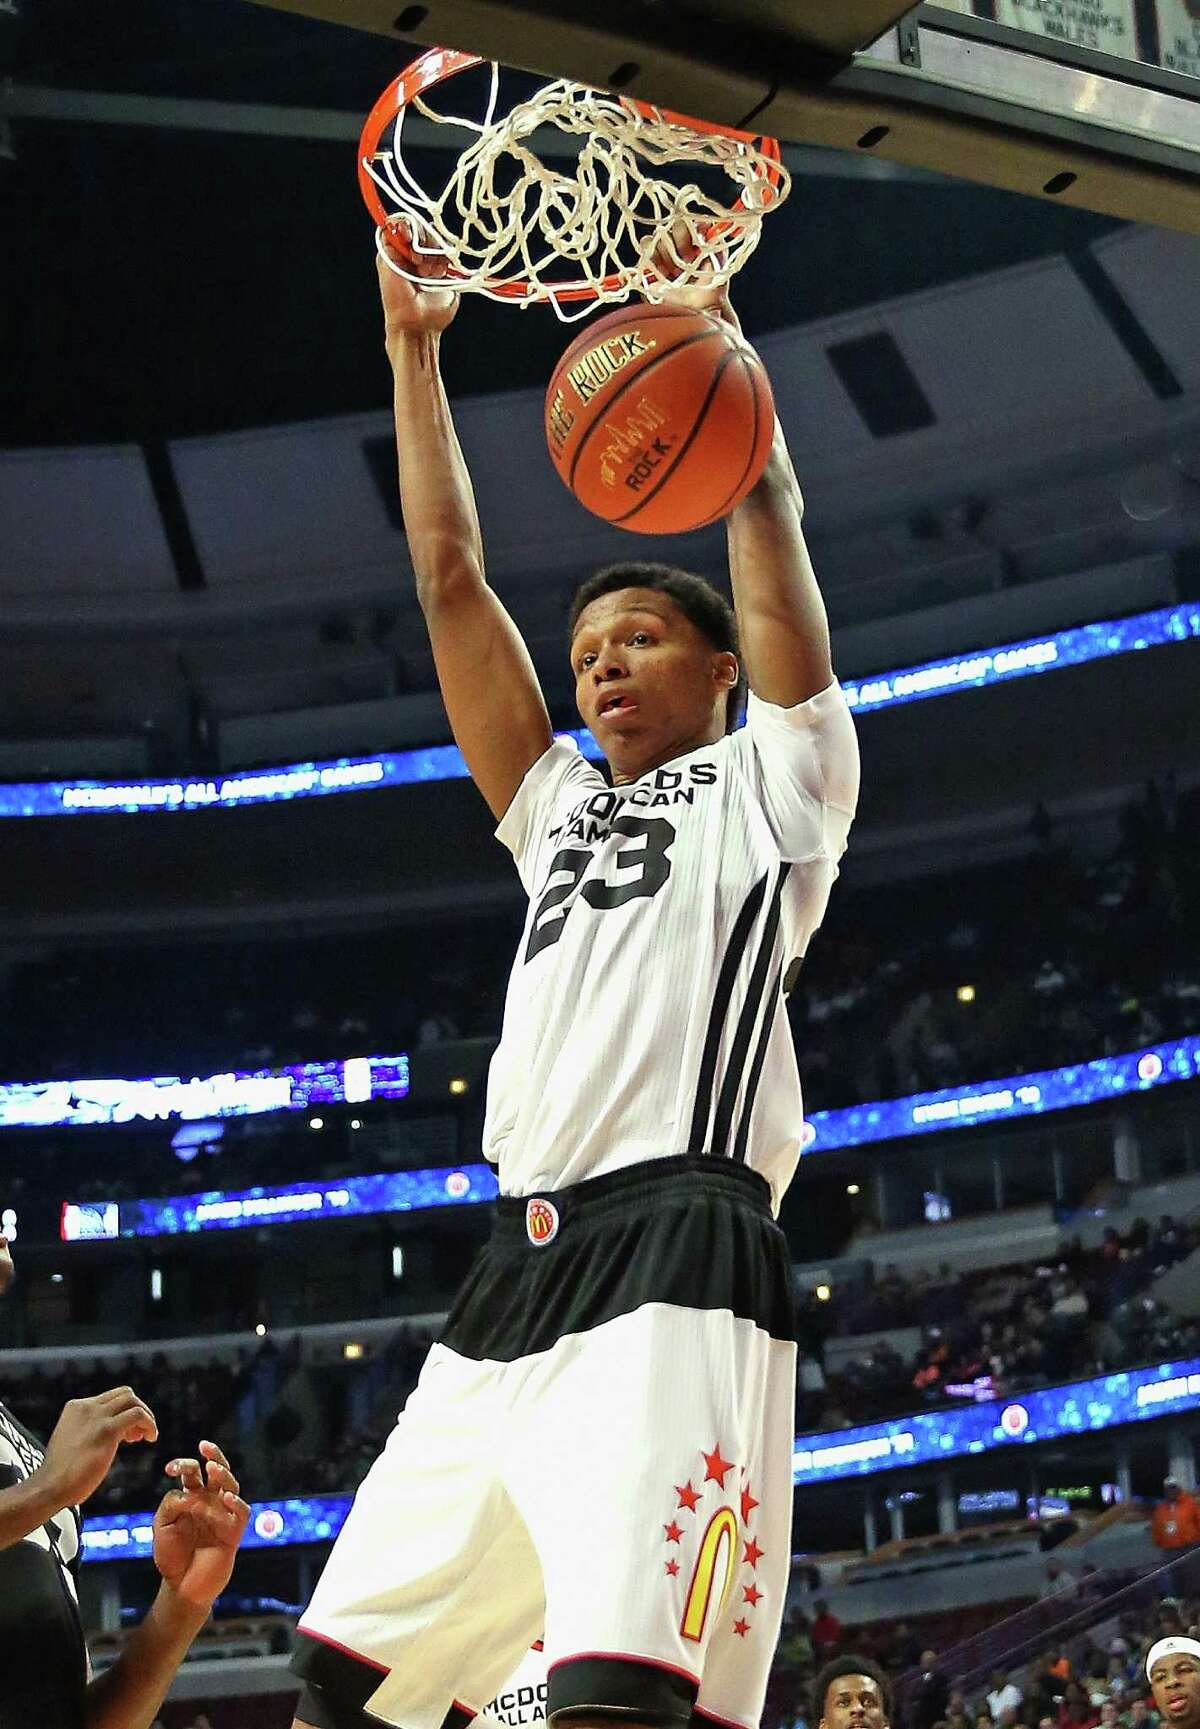 CHICAGO, IL - APRIL 01: McDonald's All-American Ivan Rabb will announce his college choice Monday at 7 p.m. (Photo by Jonathan Daniel/Getty Images)